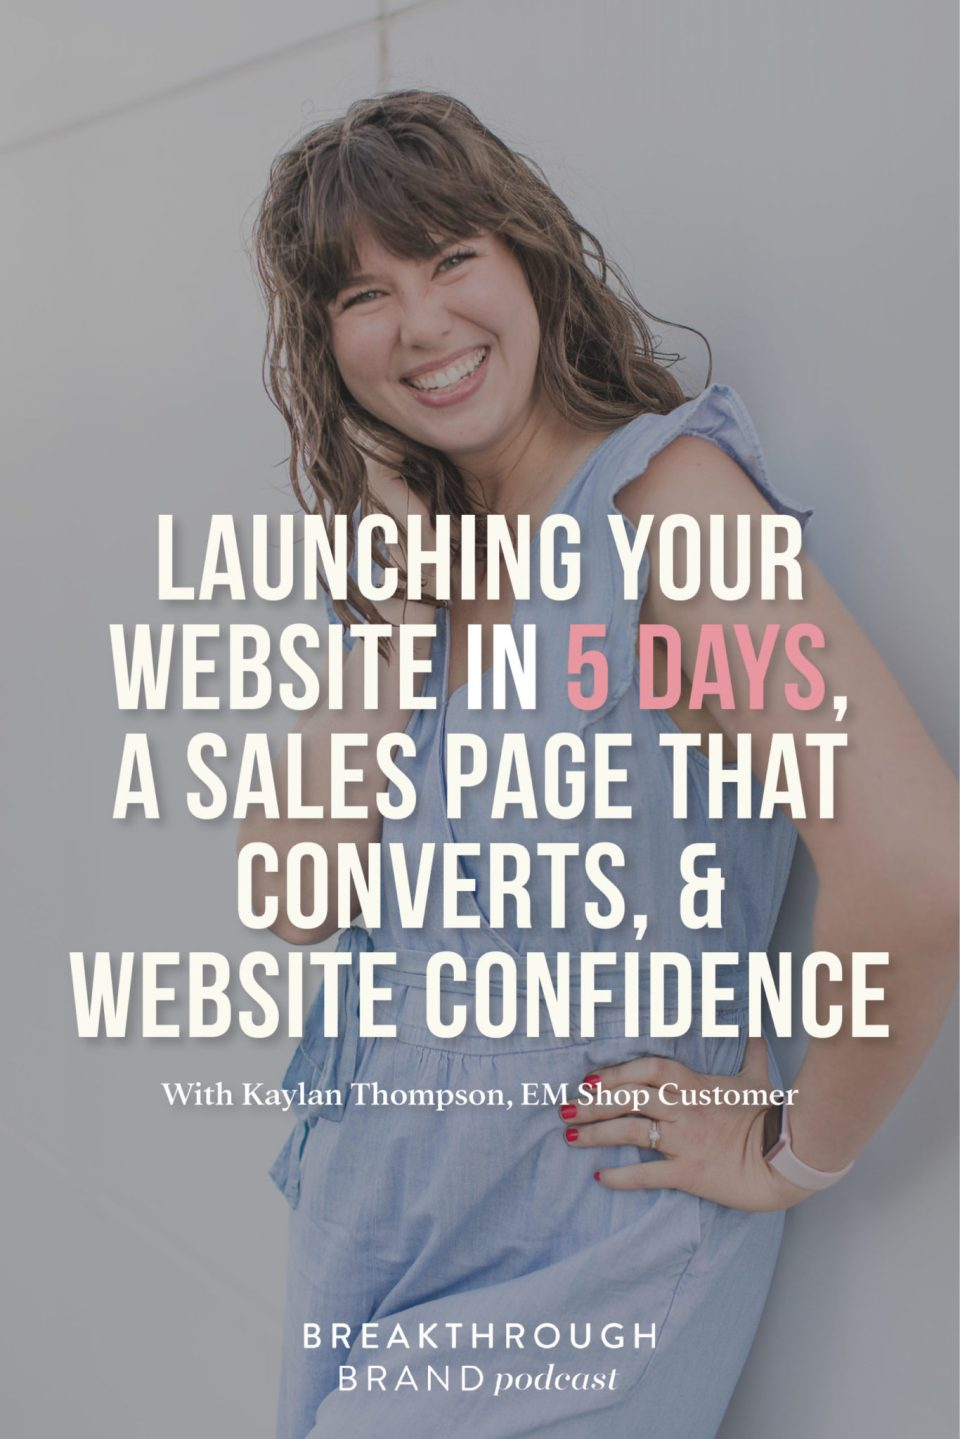 Check out Kaylan Thompson's converting sales page on the Joy To Lead website!